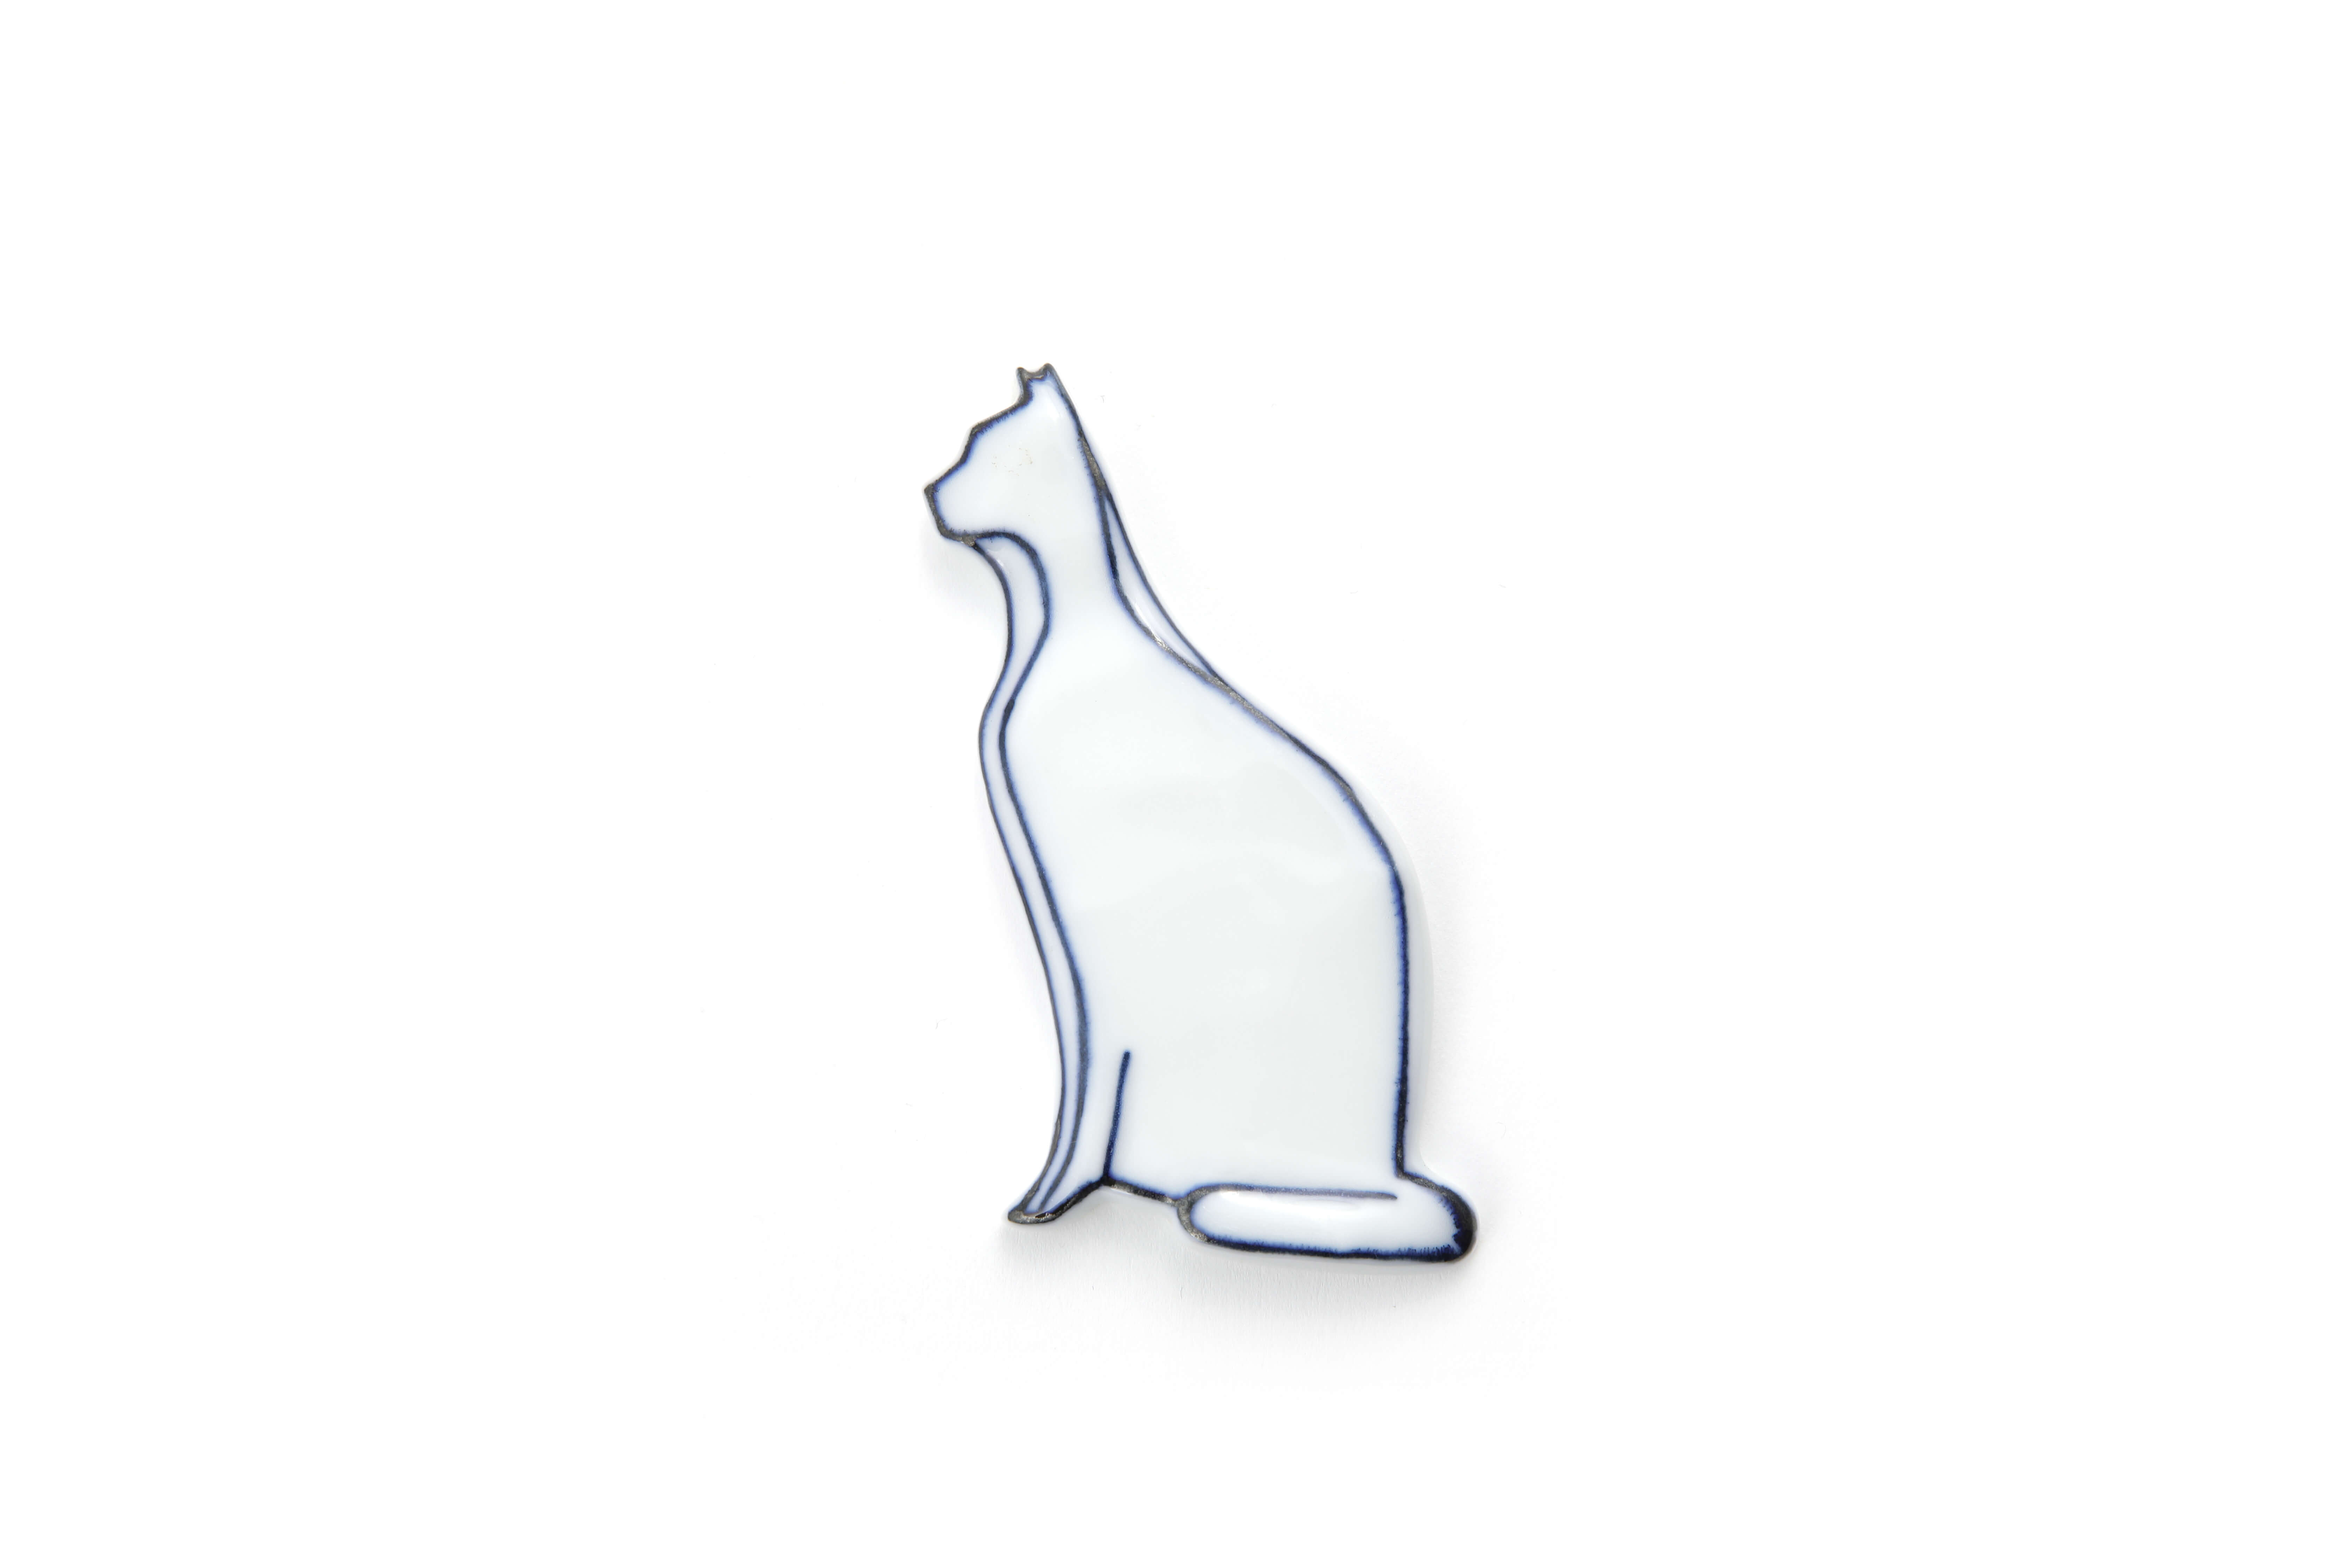 Handmade Cat-shaped Chopstick Holder with Blue Lines - Sitting Cat